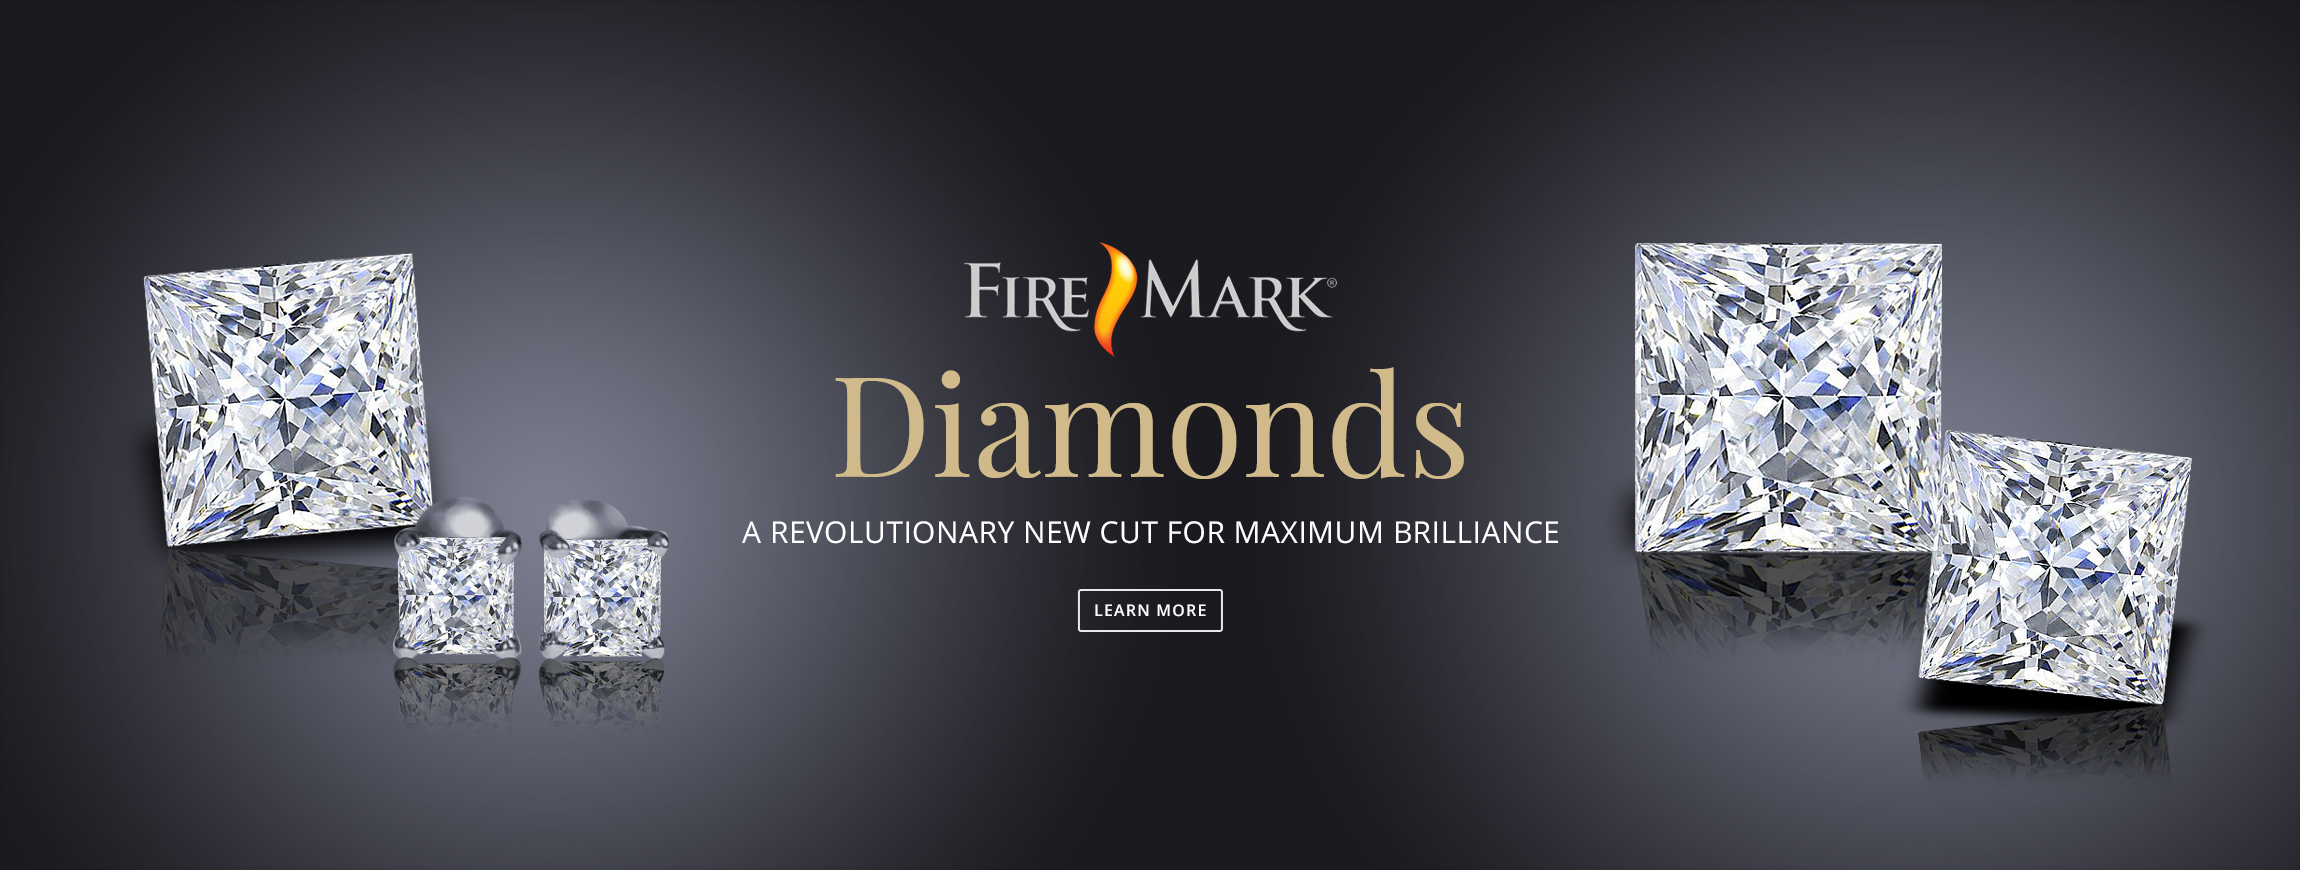 diamond jewellers collections days firemark anstett